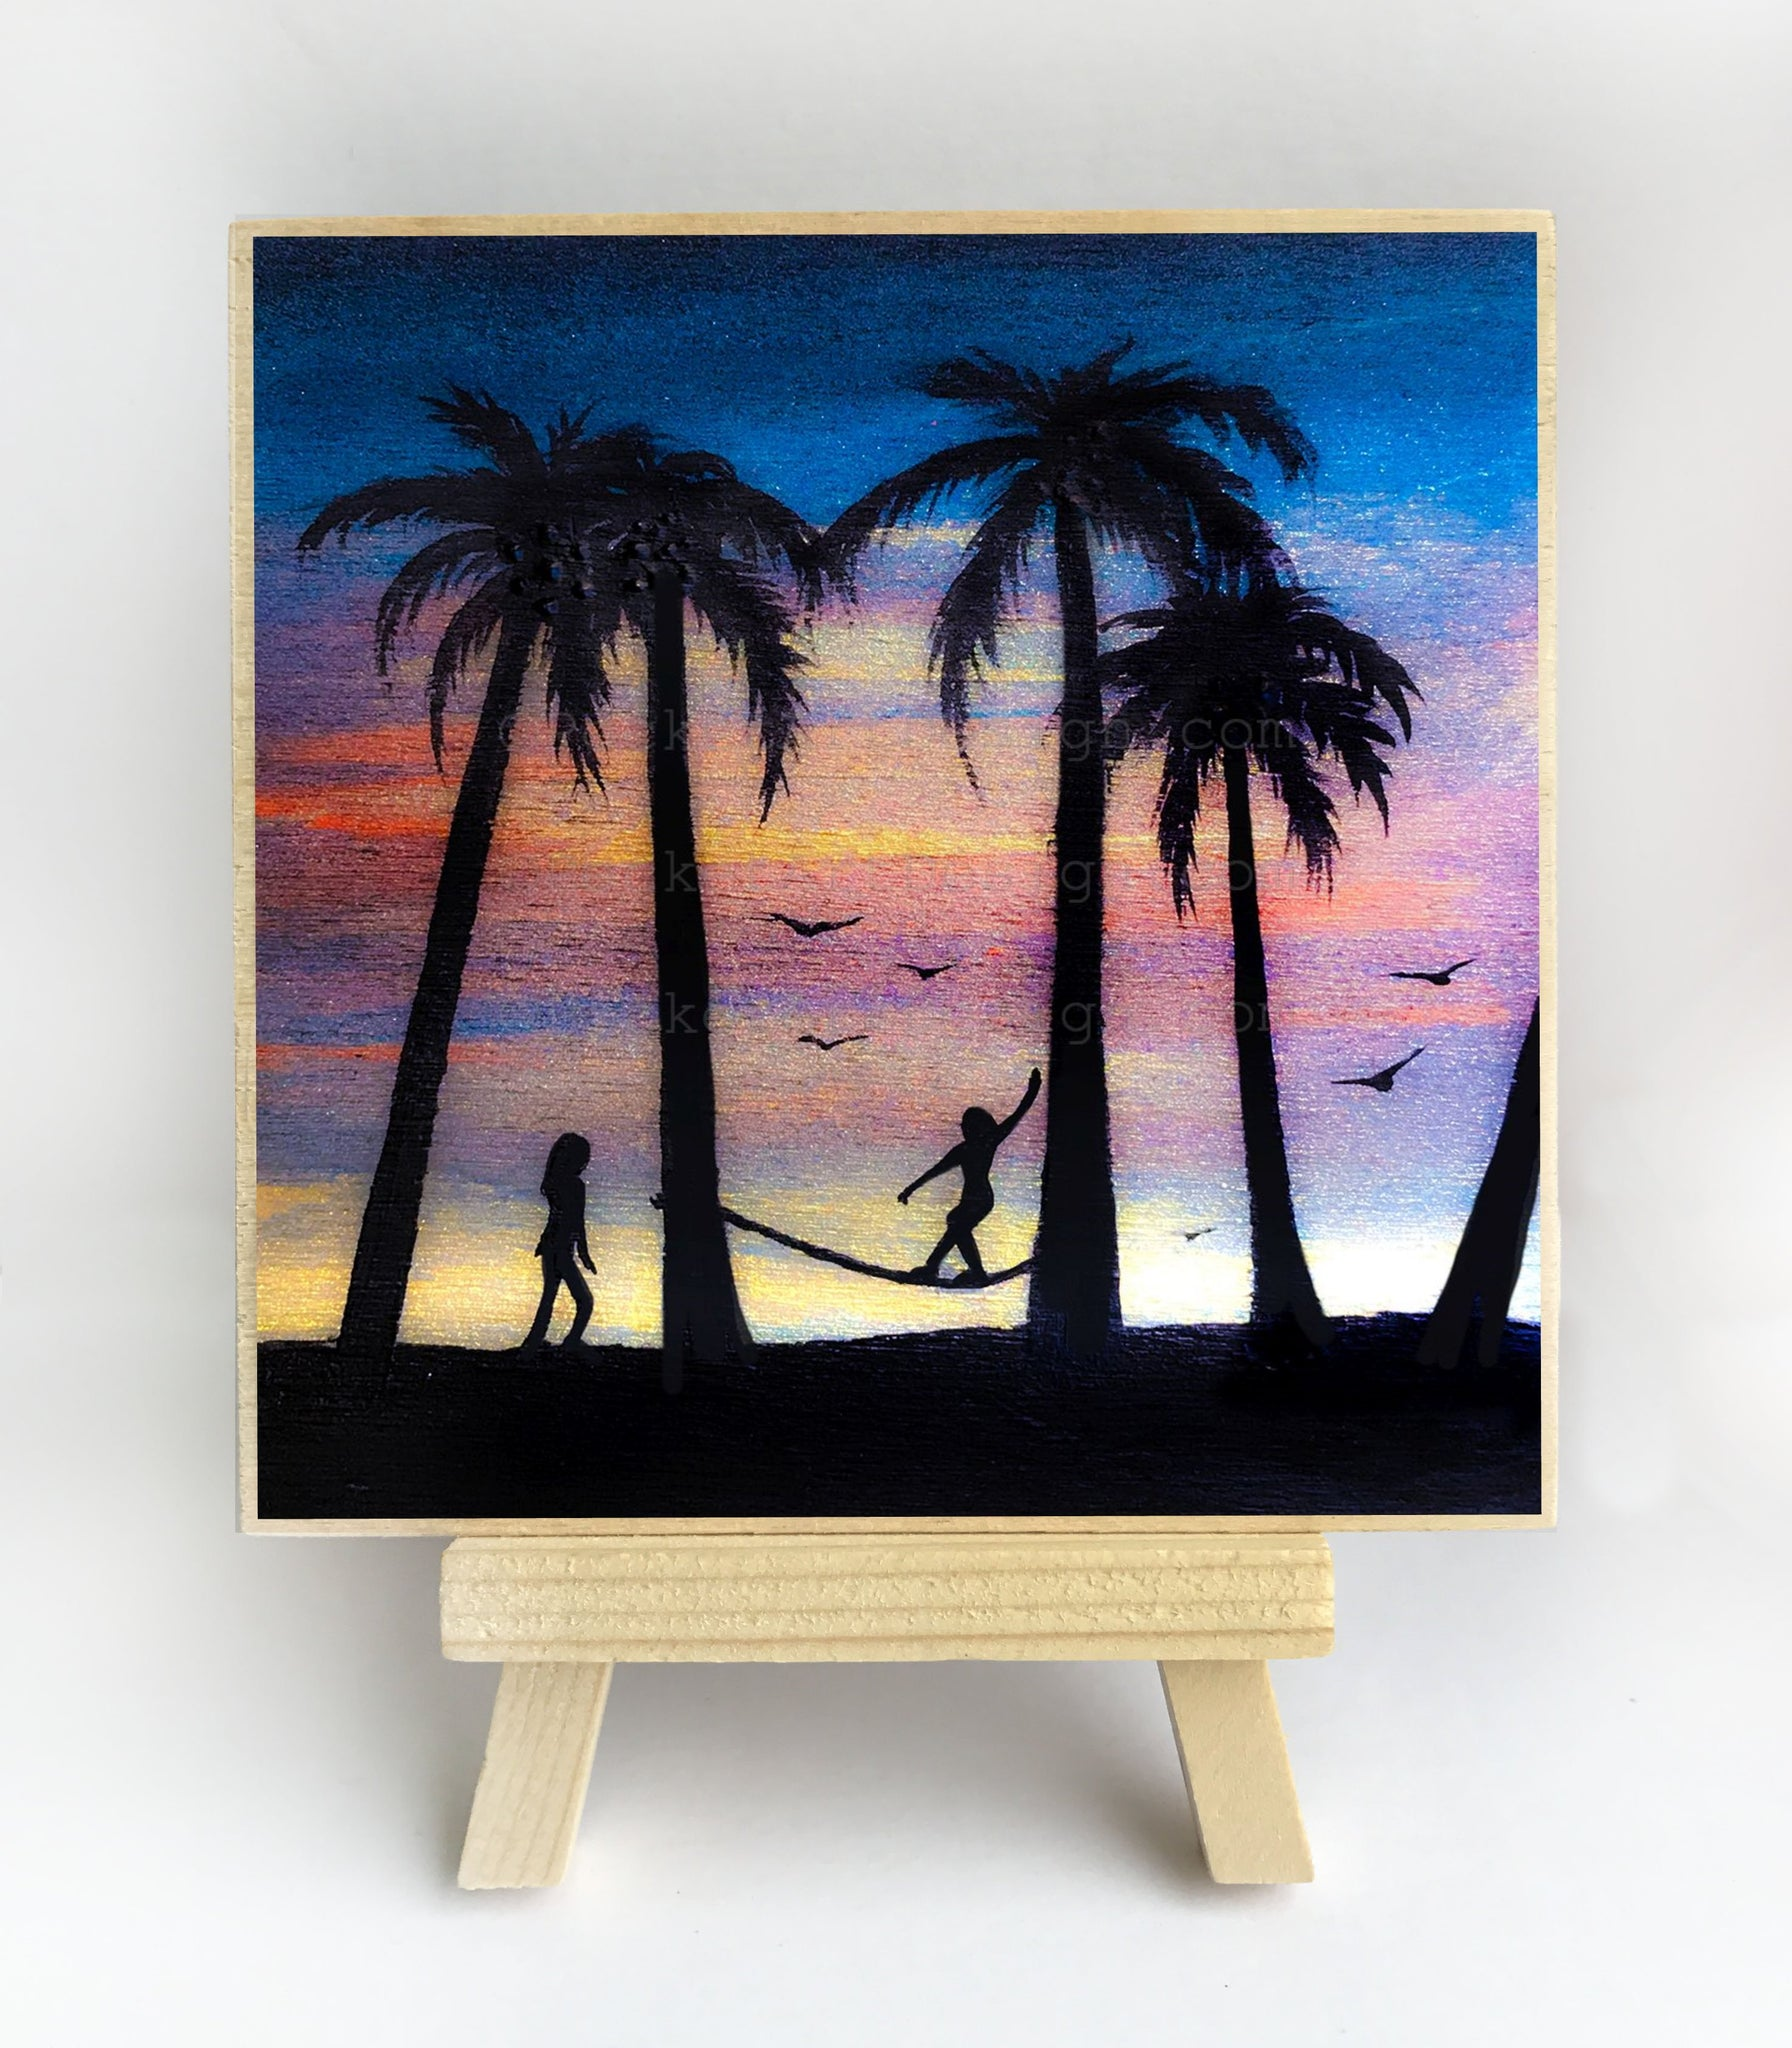 Girl walking on a rope - night - silhouette - original miniature art print on 4 x 4 wood-Print-Easel Wood-PocketArtDesigns-Original Art-wall rt